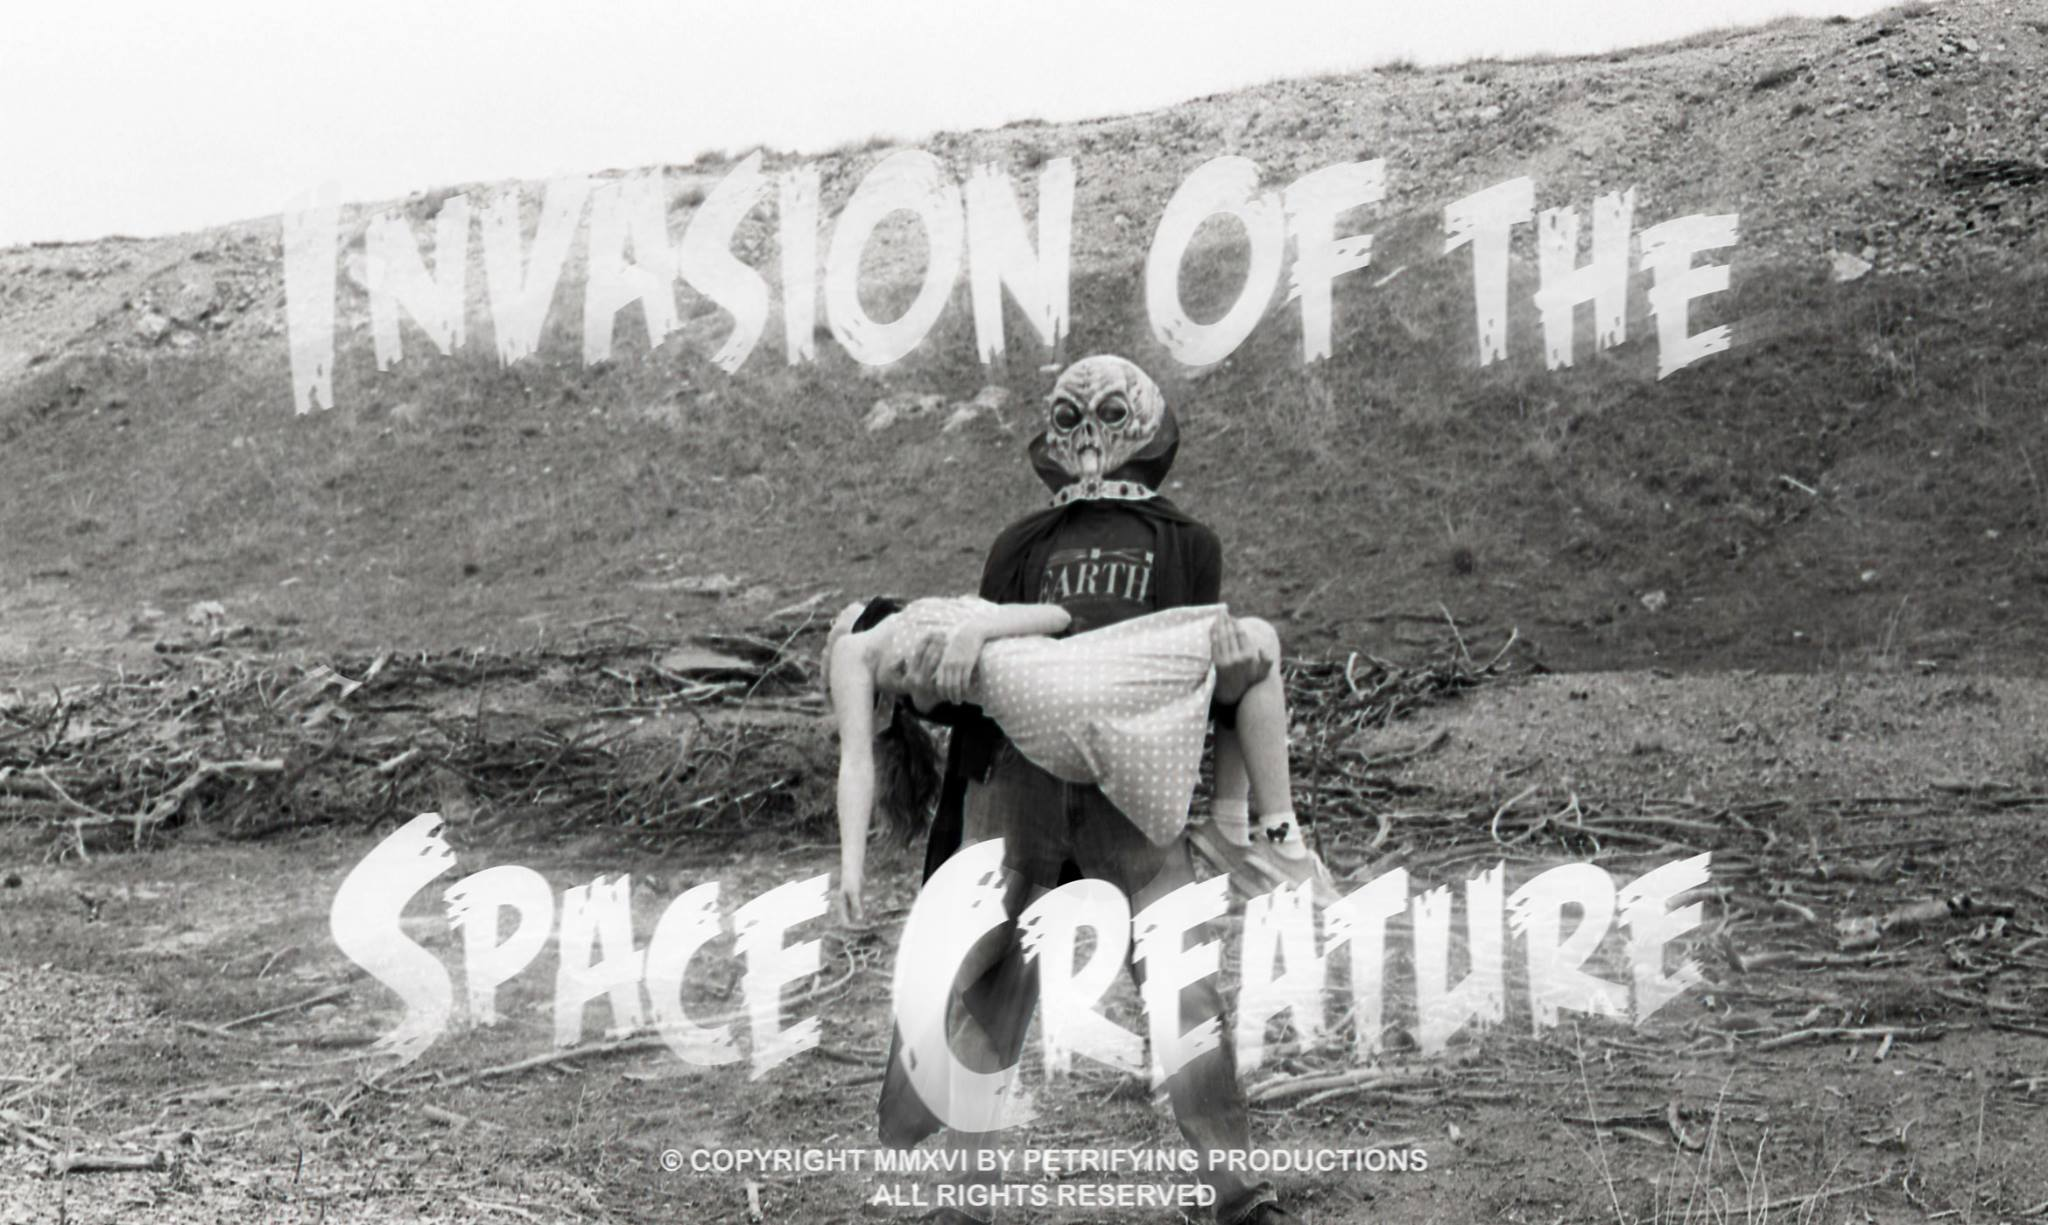 Invasion of the Space Creature